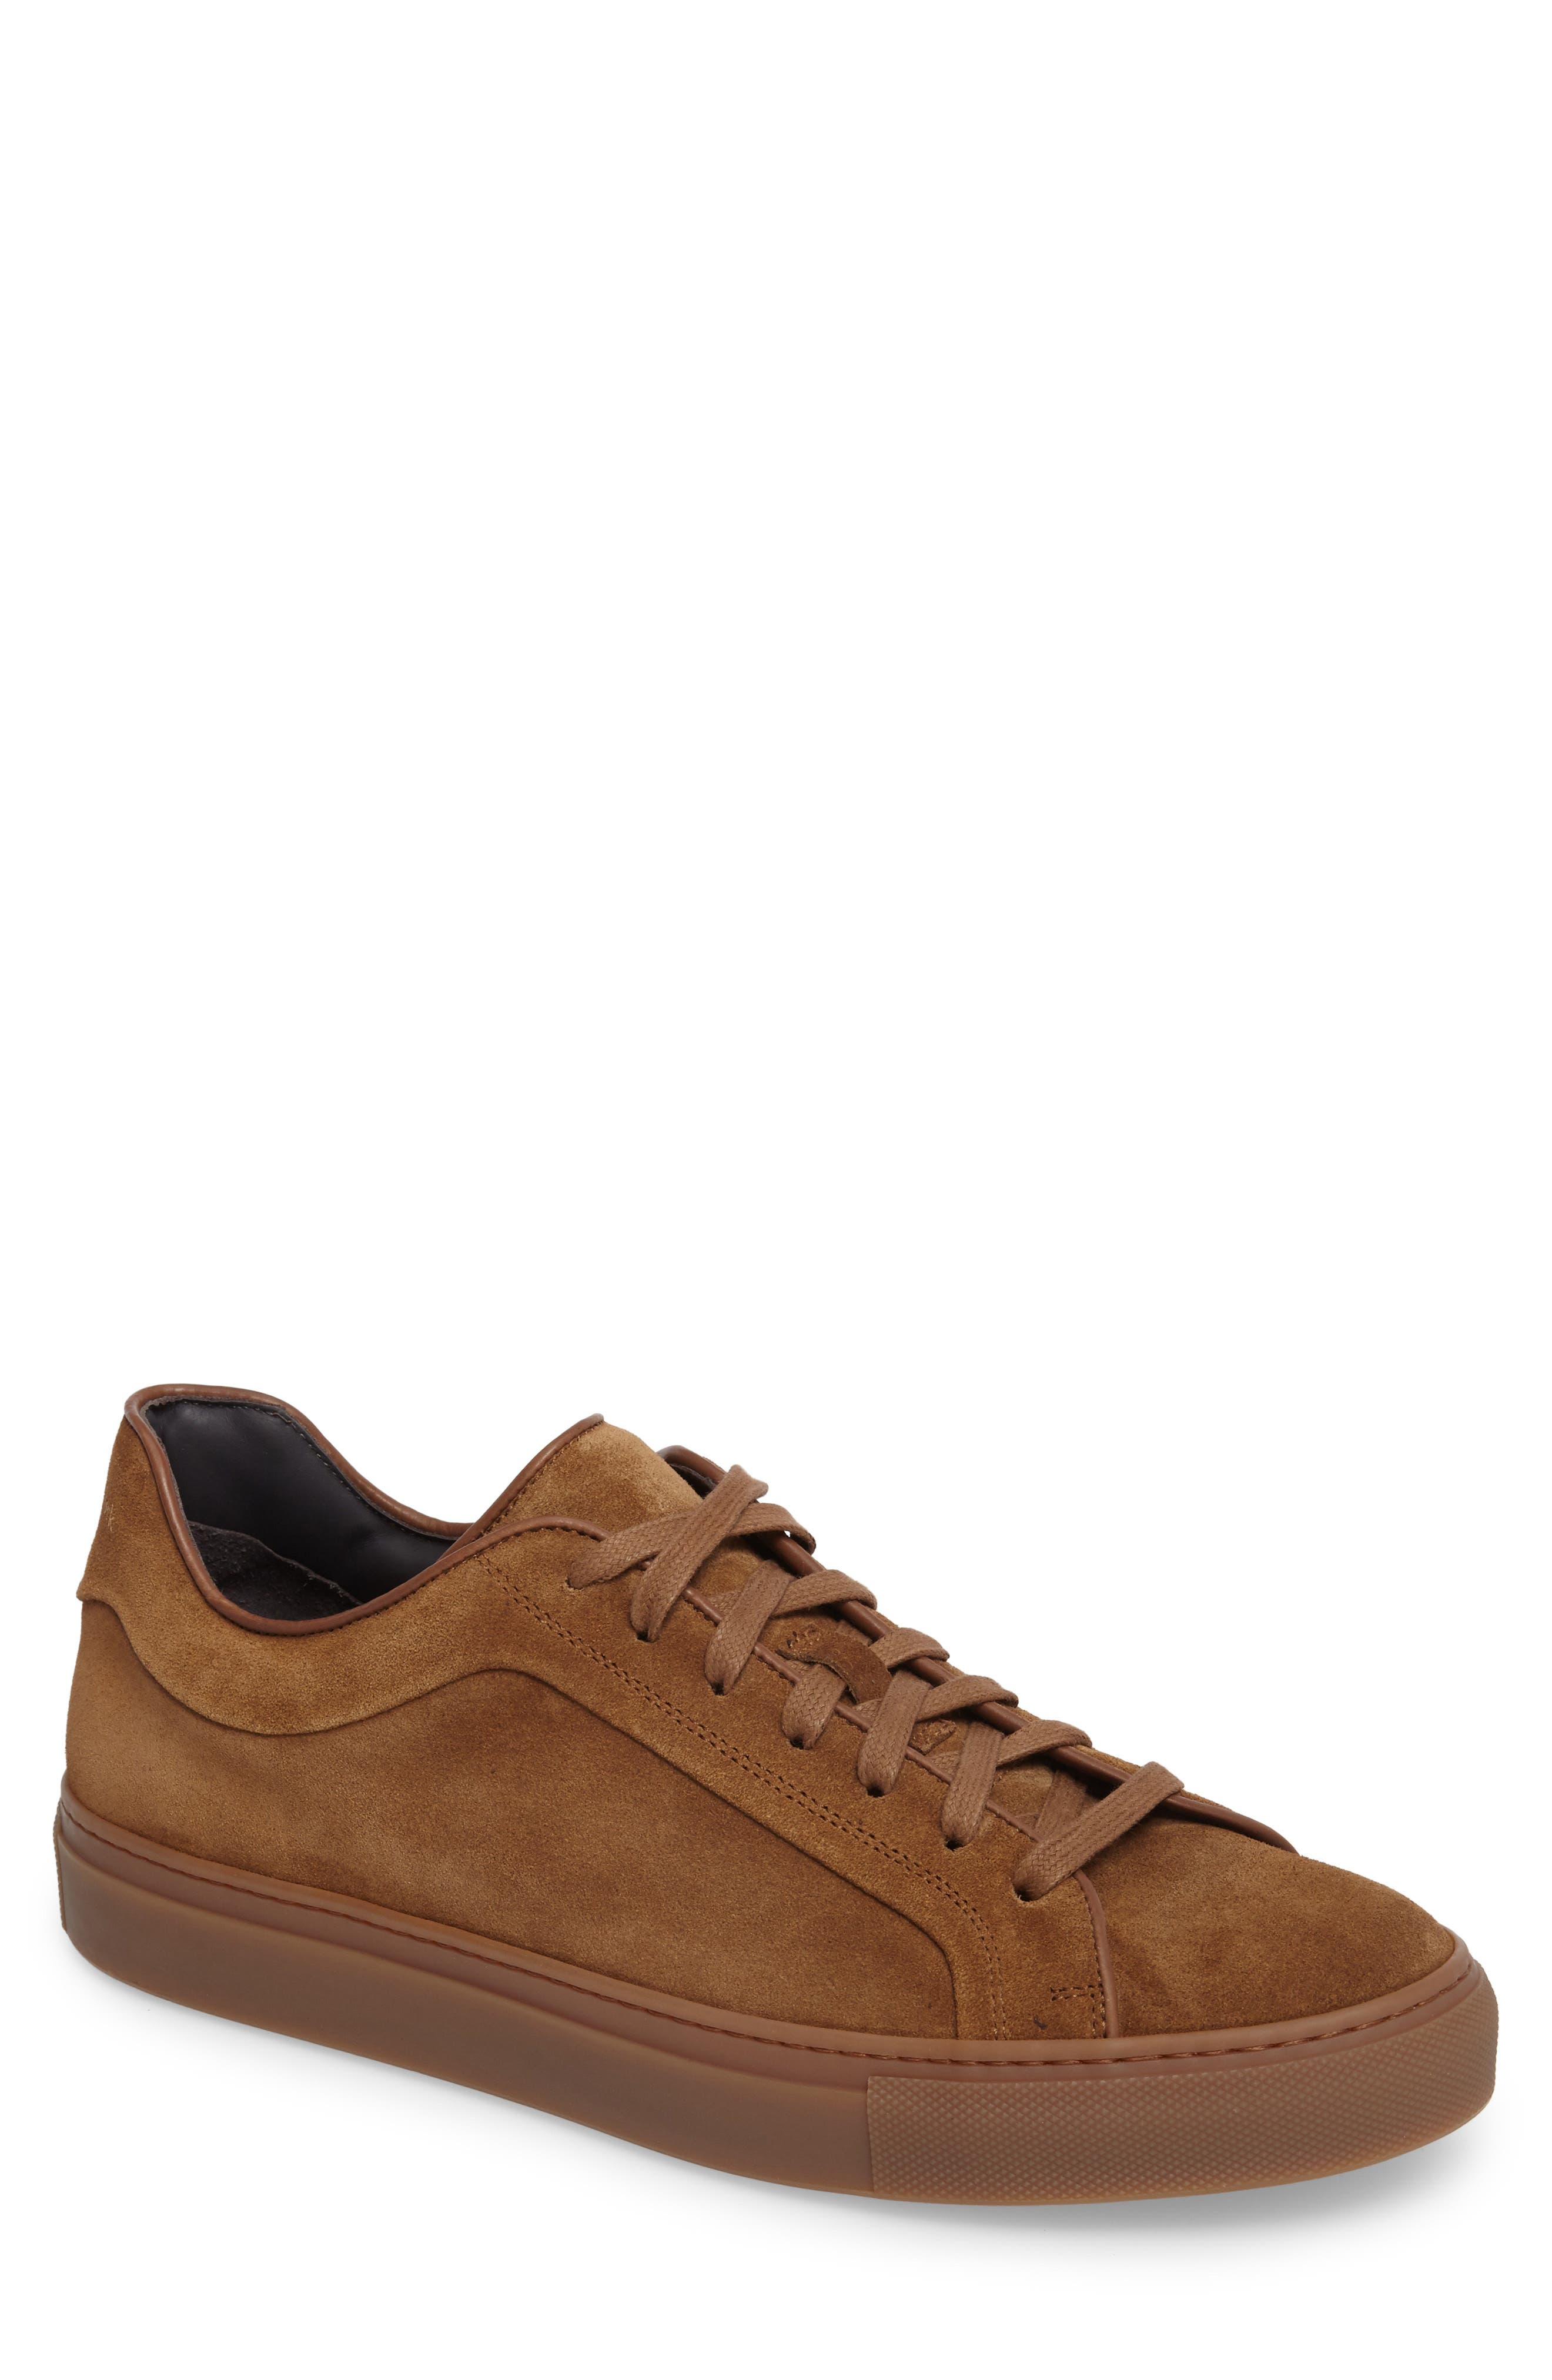 Marshall Sneaker,                         Main,                         color, Brown Suede Leather